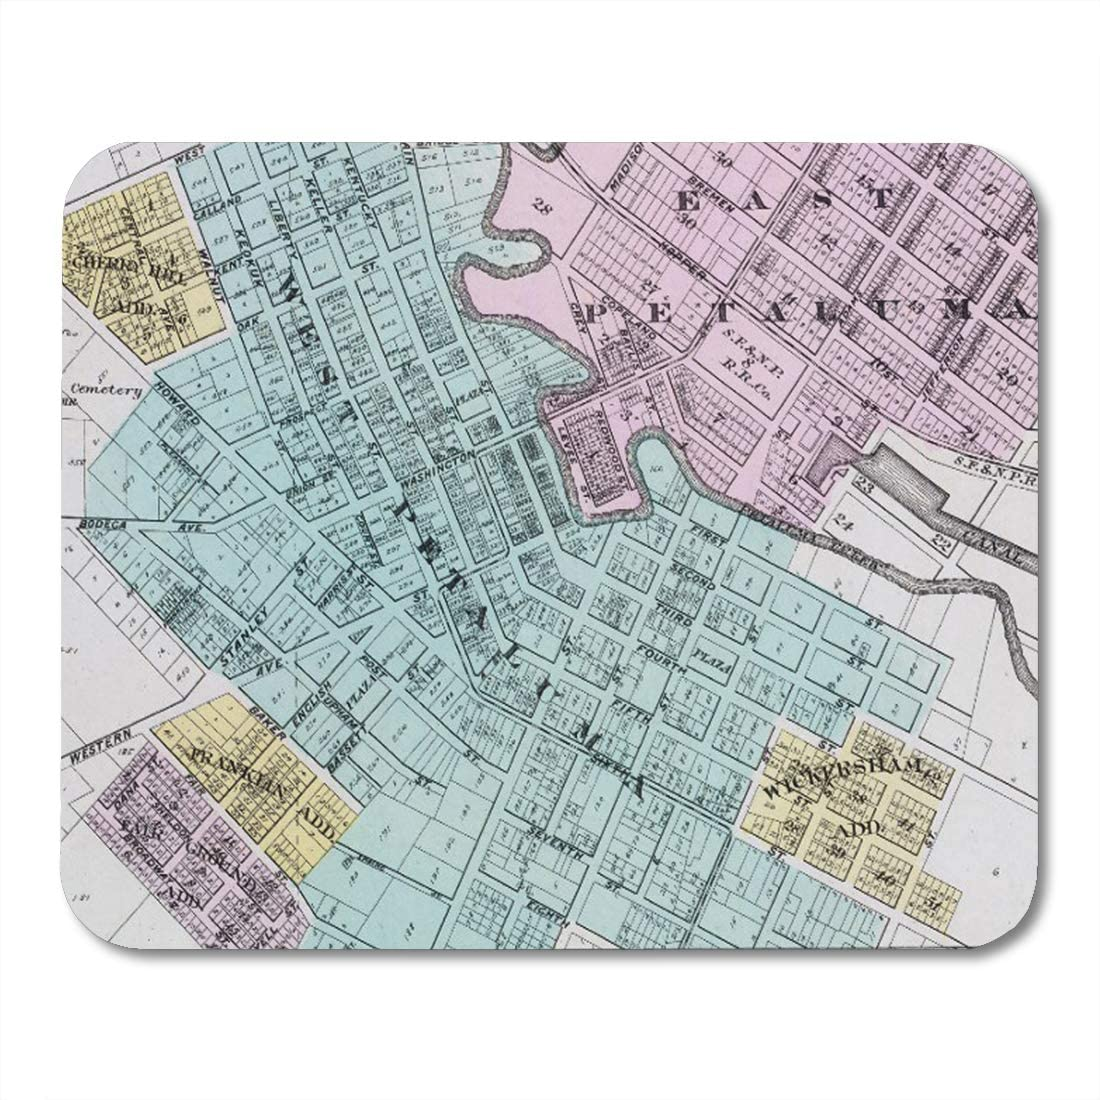 Aikul Mouse Pads Custom Turquoise Ombre Office Color Coordinated Housewares Mouse Mat 9.5 x7.9 Mouse Pad Suitable for Notebook Desktop Computers Office Accessories